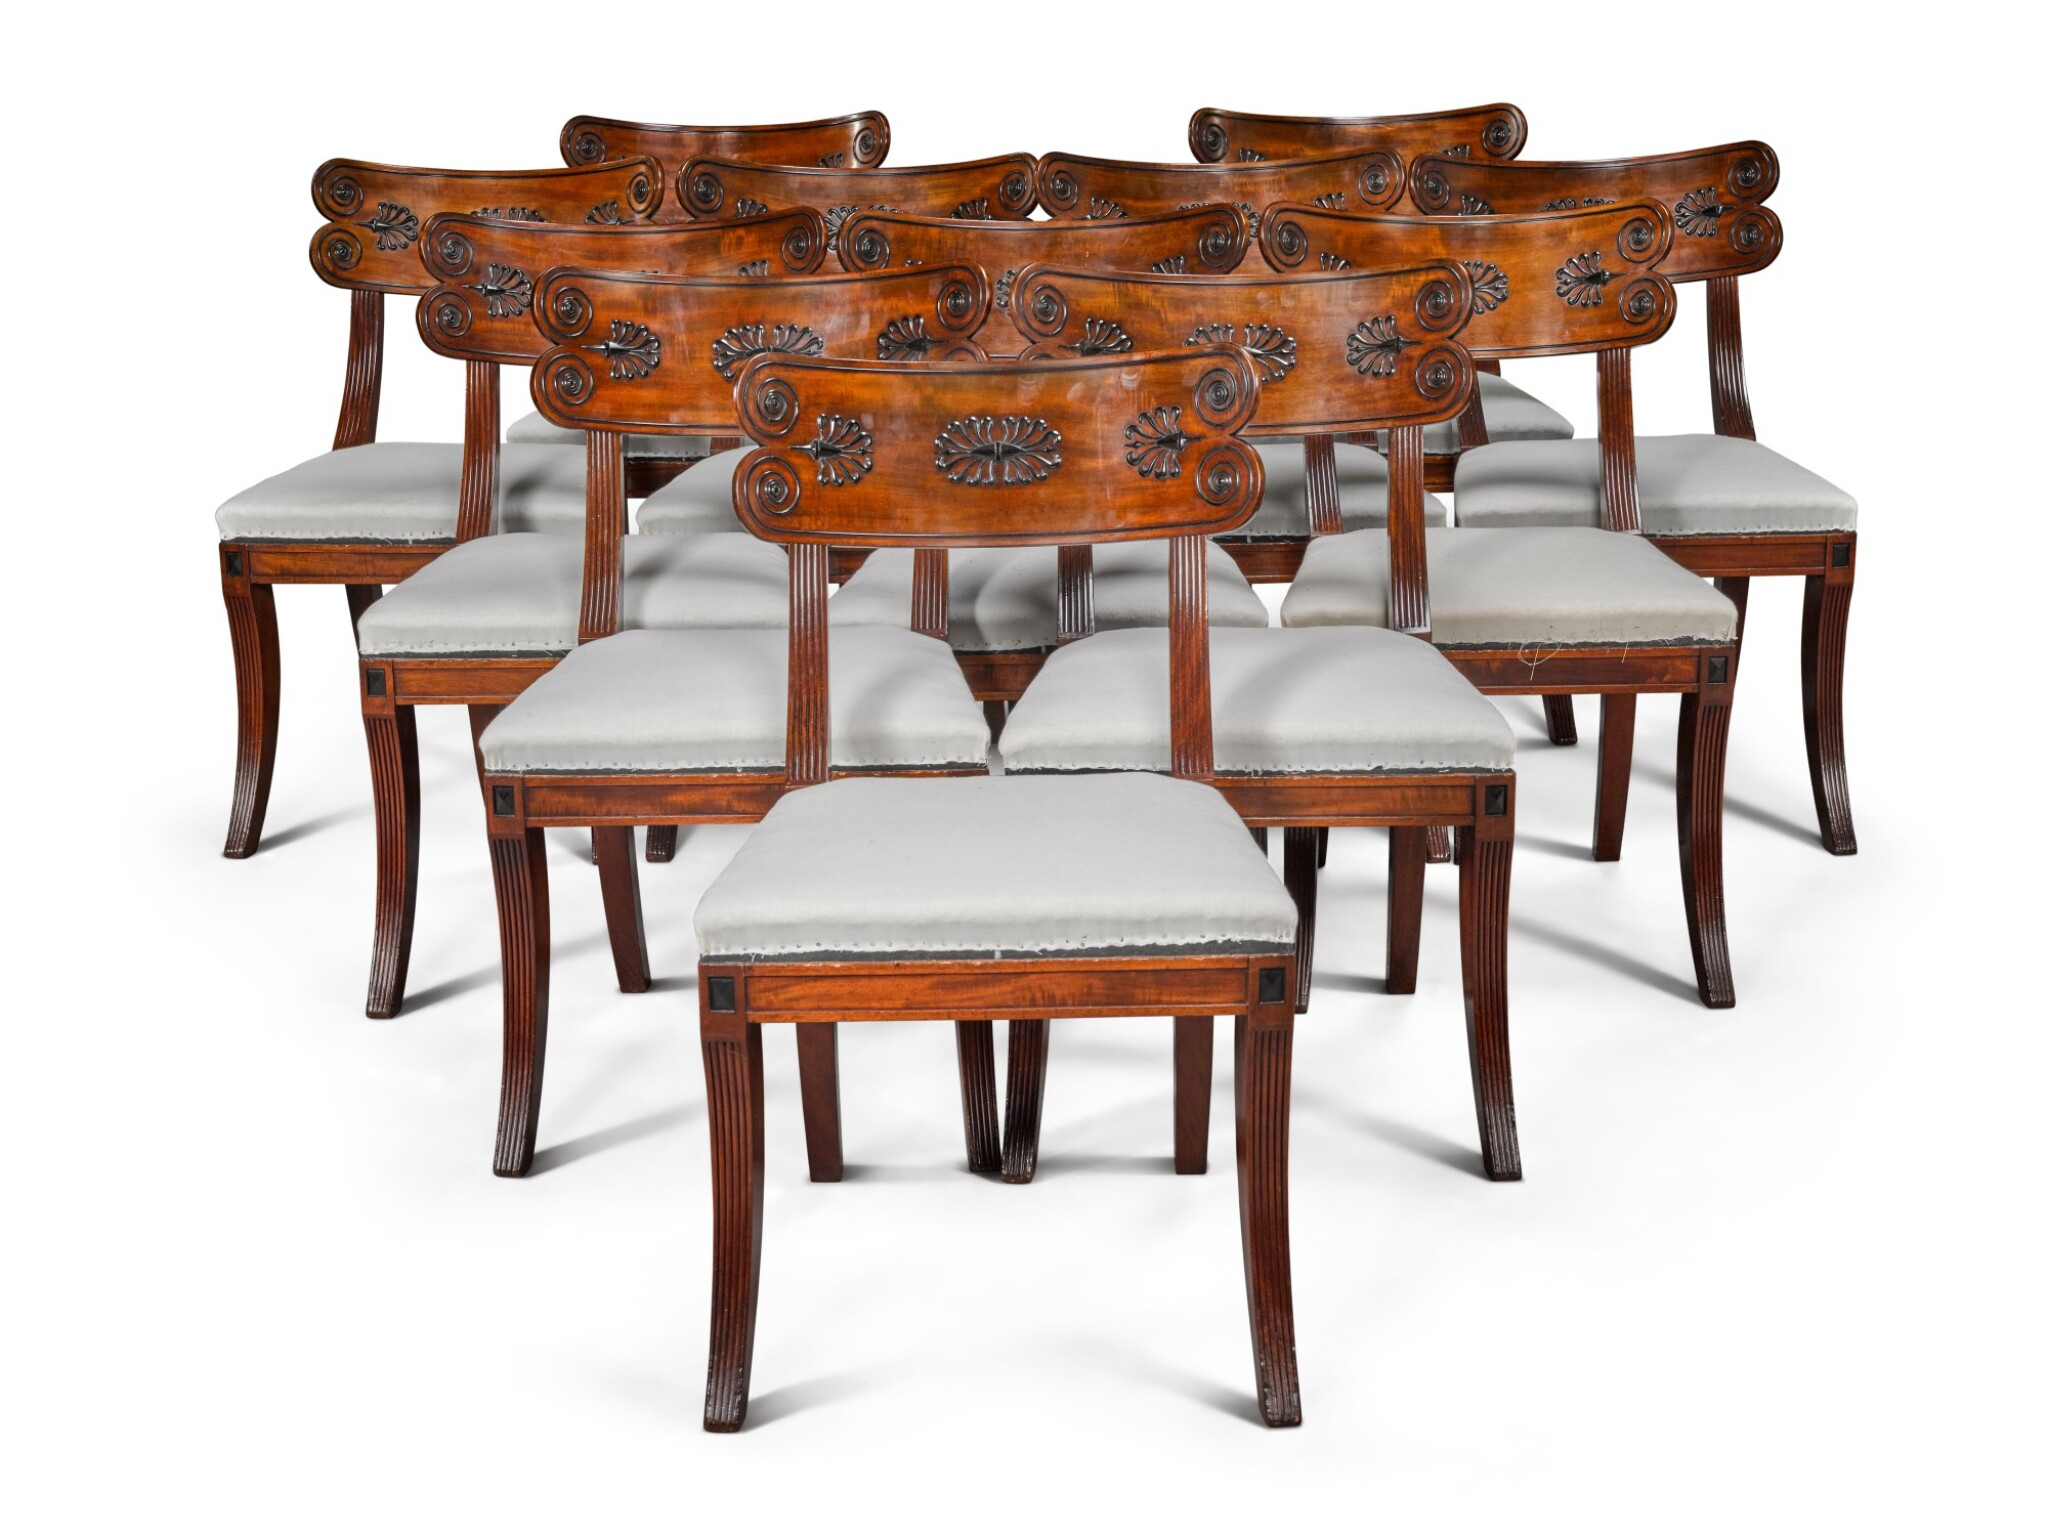 View full screen - View 1 of Lot 158. A set of twelve Regency mahogany and ebony 'Klismos' dining chairs, circa 1815, after a design by Thomas Hope.